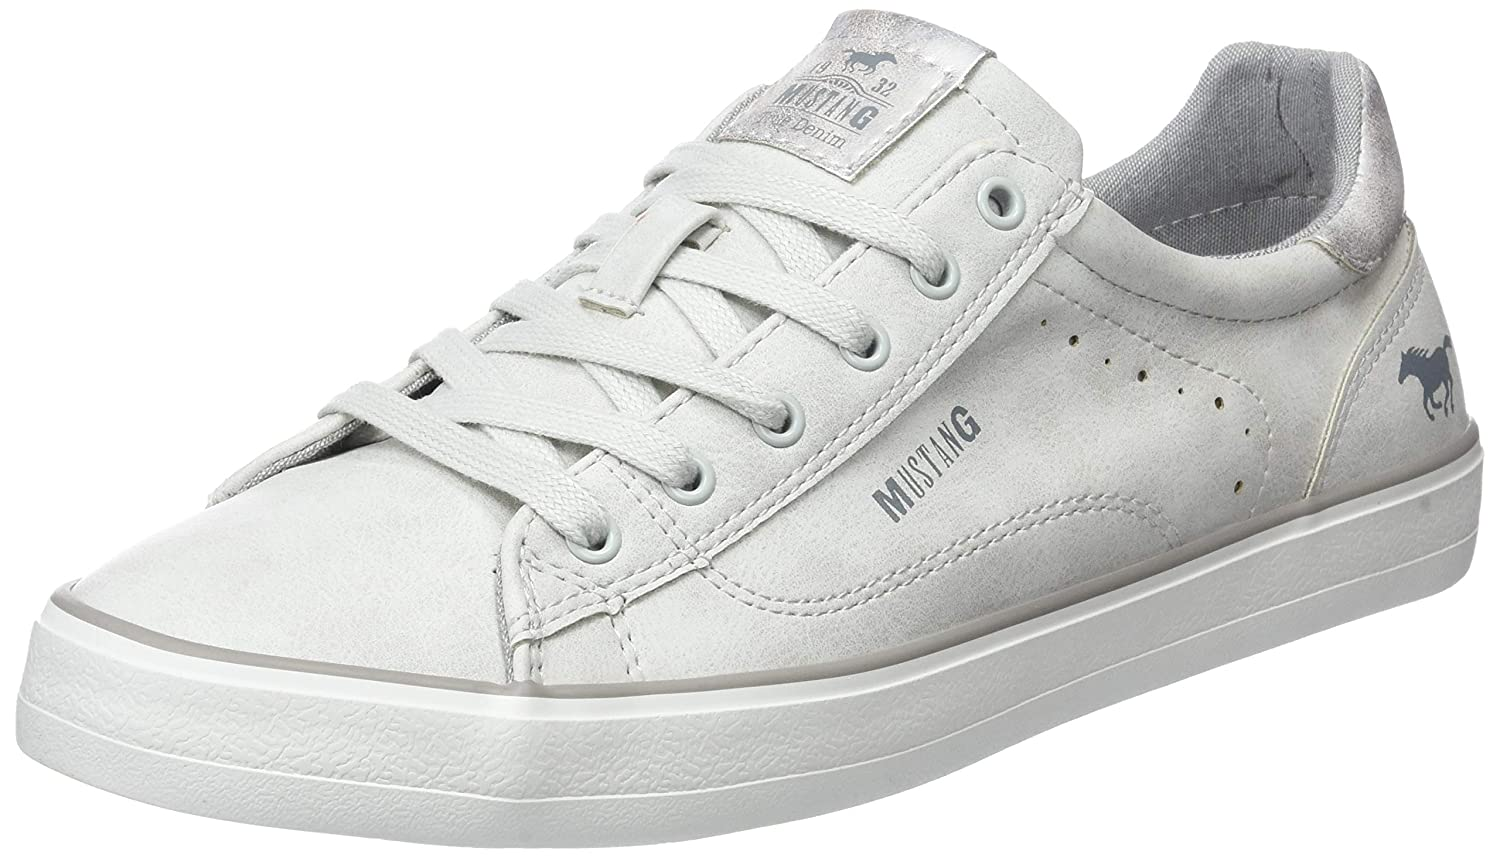 Mustang Ice 1272-301-203, Sneakers Sneakers Basses Femme, Mustang Ice Blanc Cassé (Ice) 9f8a17d - therethere.space